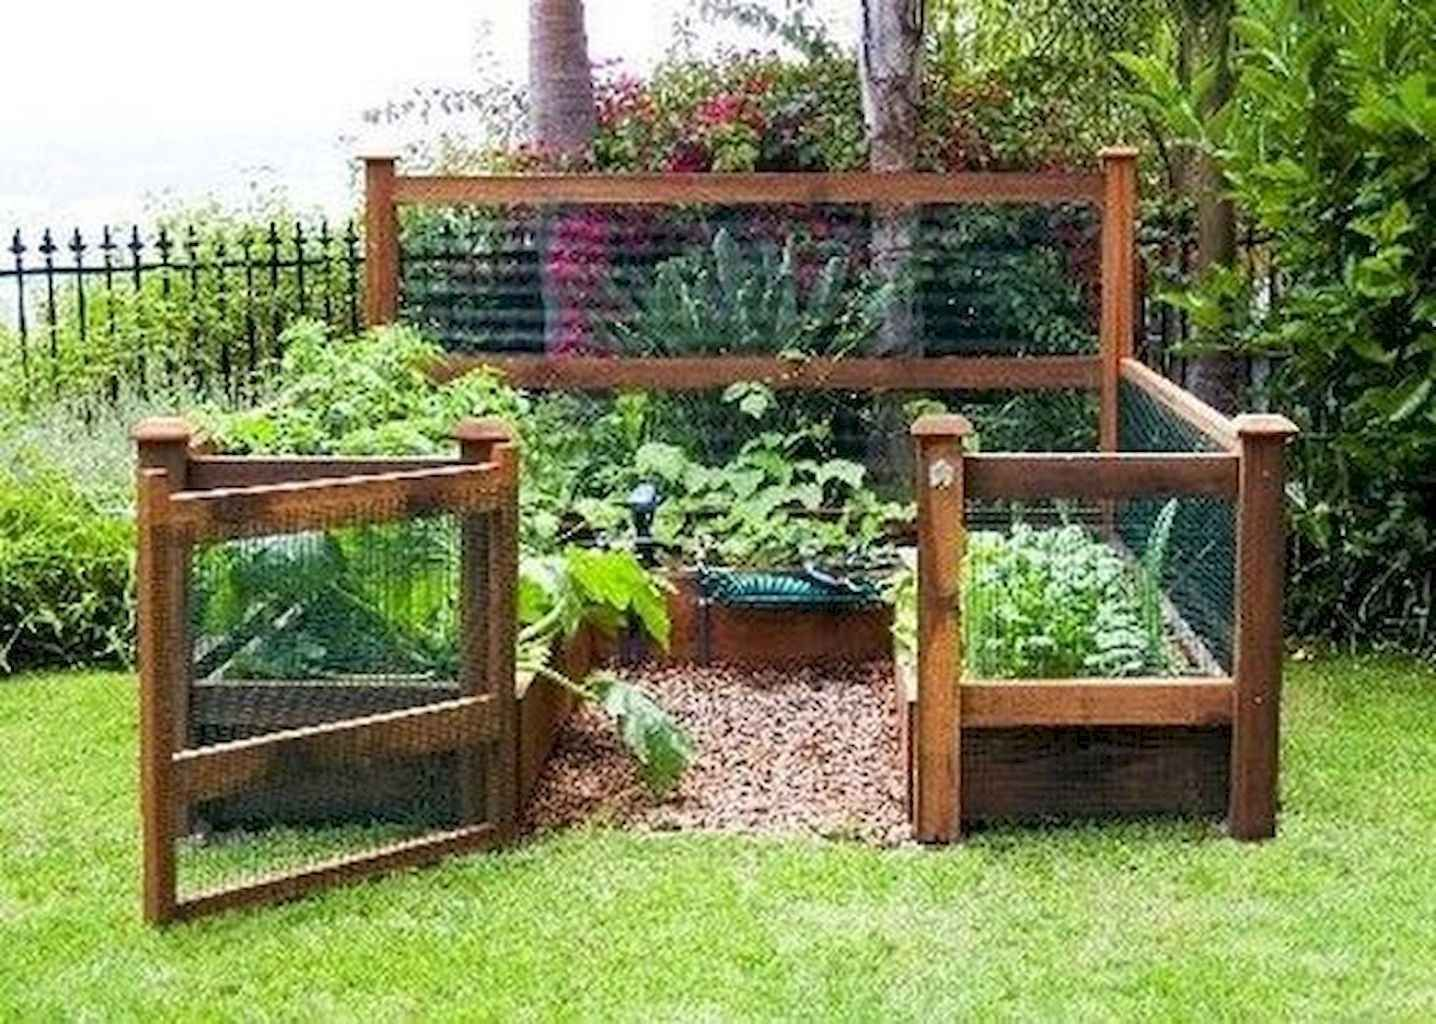 Beautiful Vegetable Gardening Ideas For Small Spaces ...